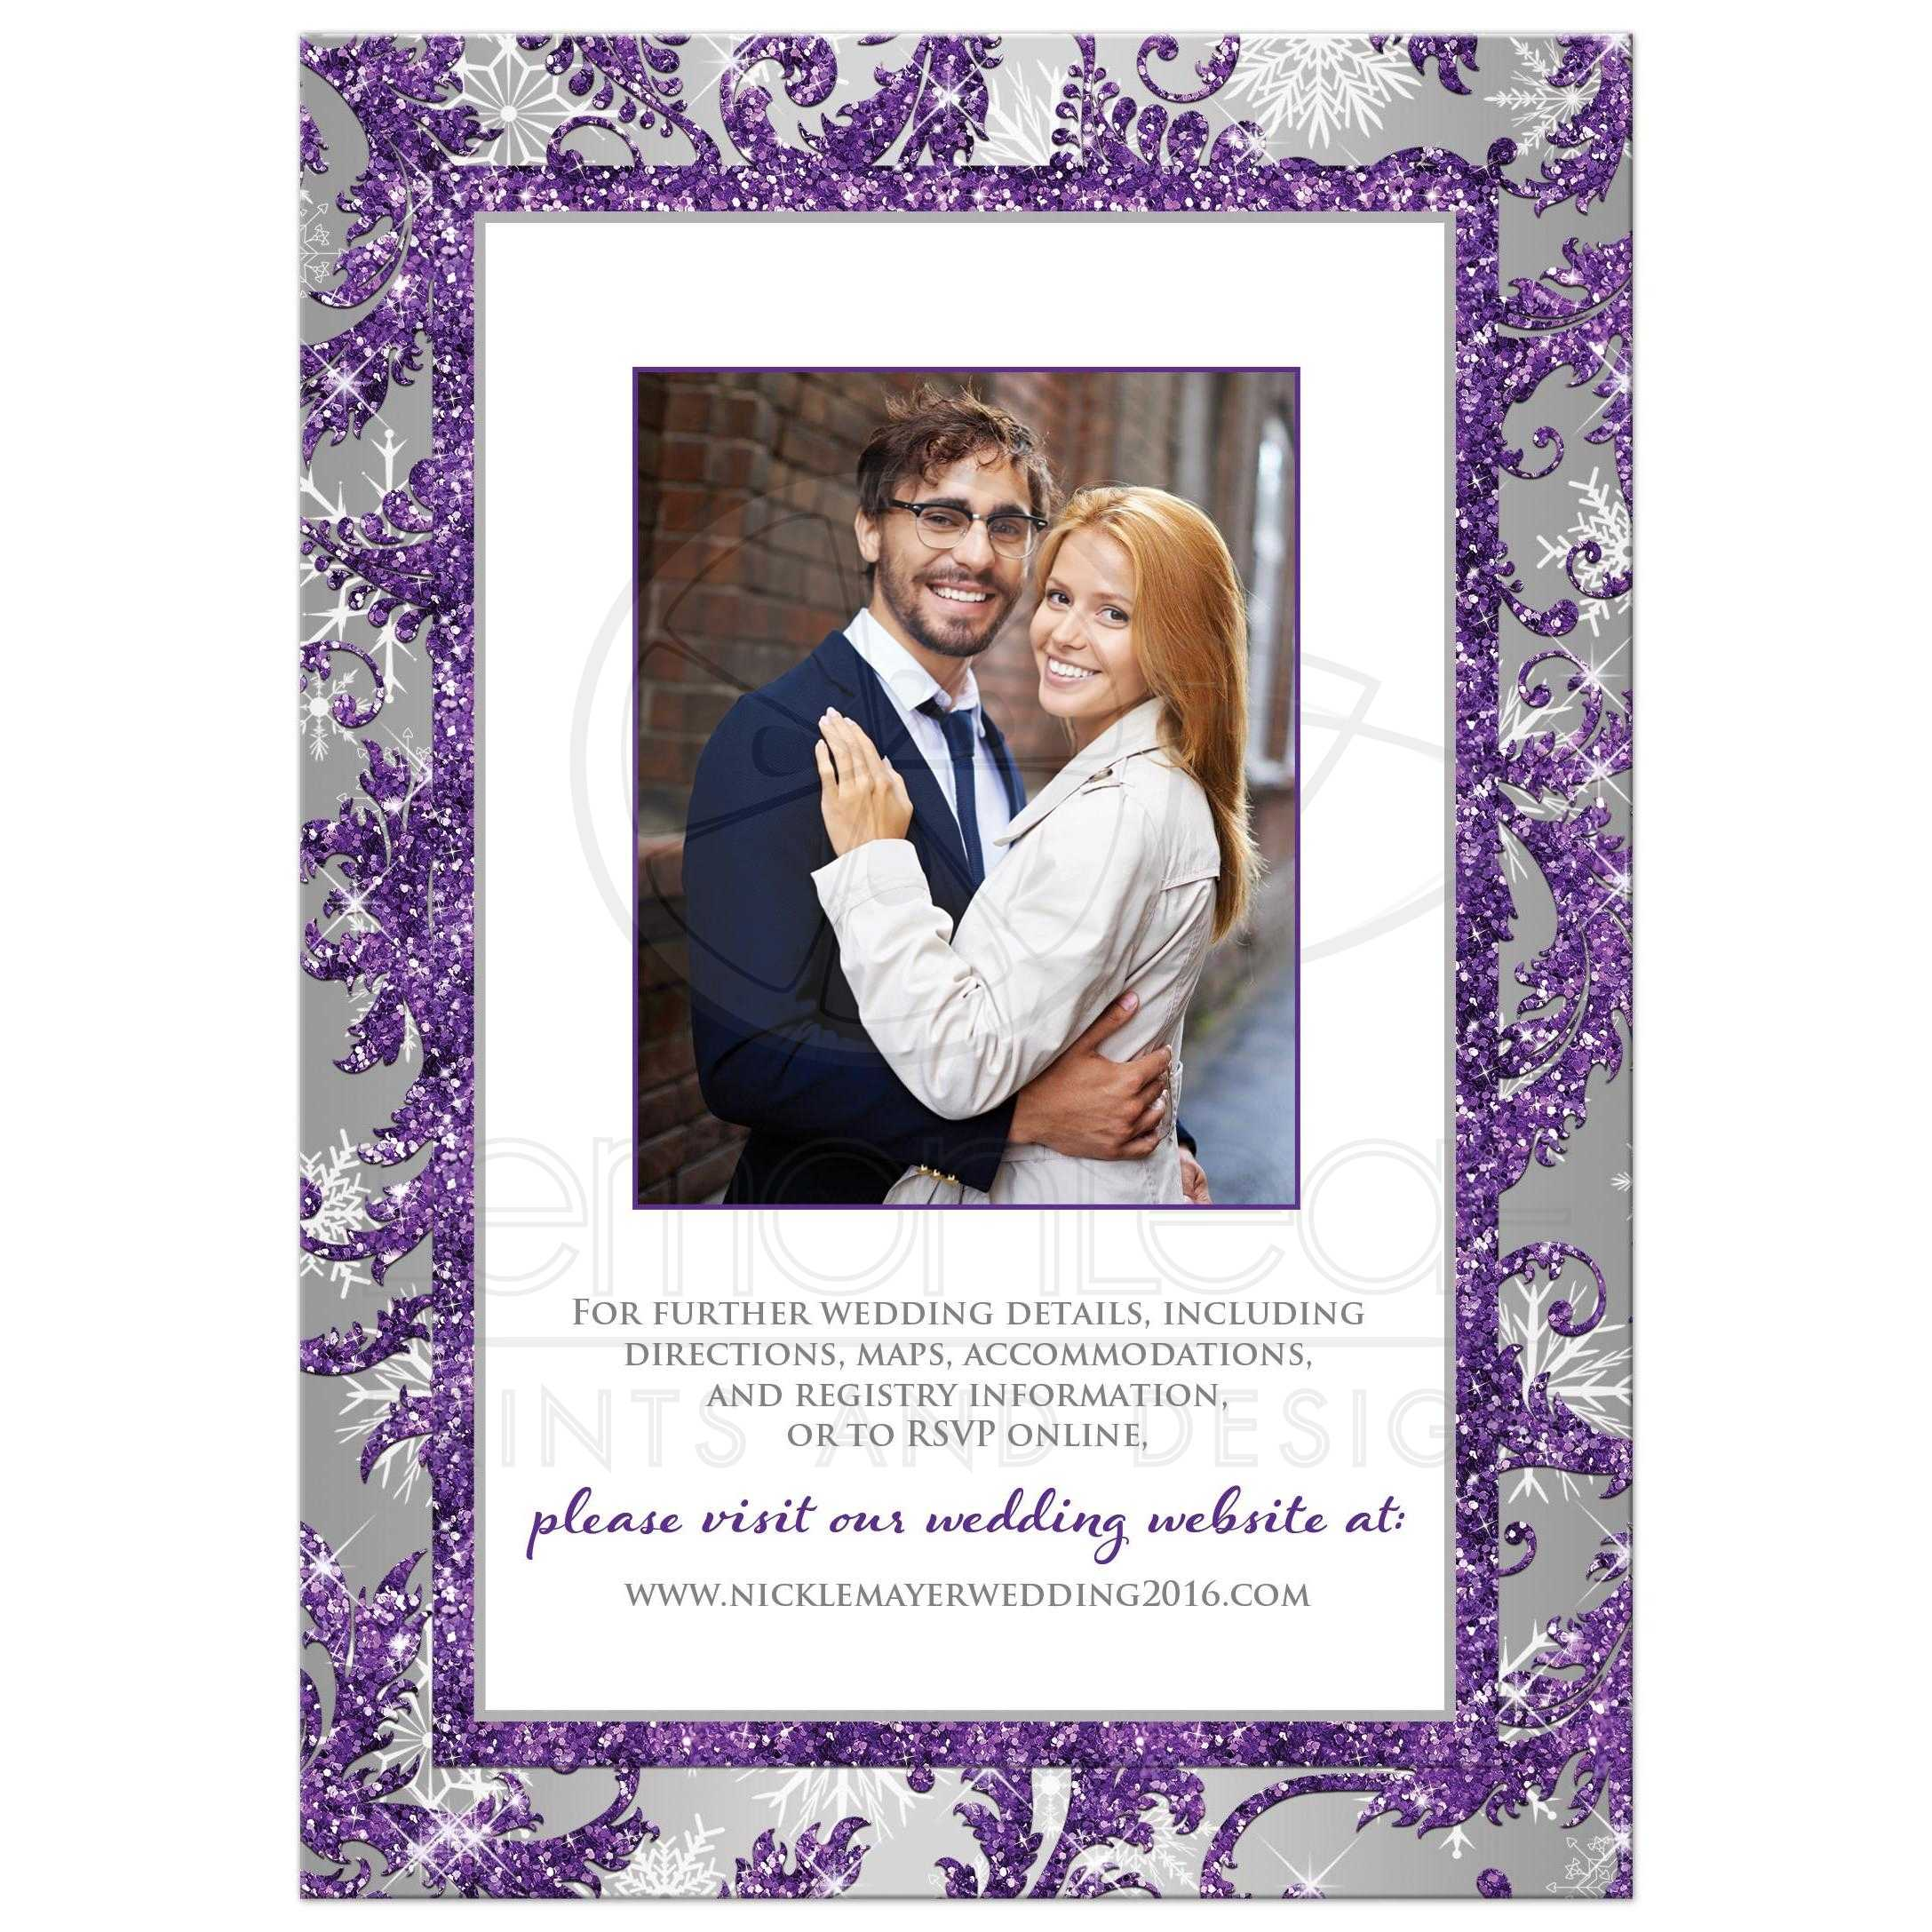 ... Best Winter Wonderland Wedding Invite In Ice Purple, Silver, And White  Snowflakes With Joined ...